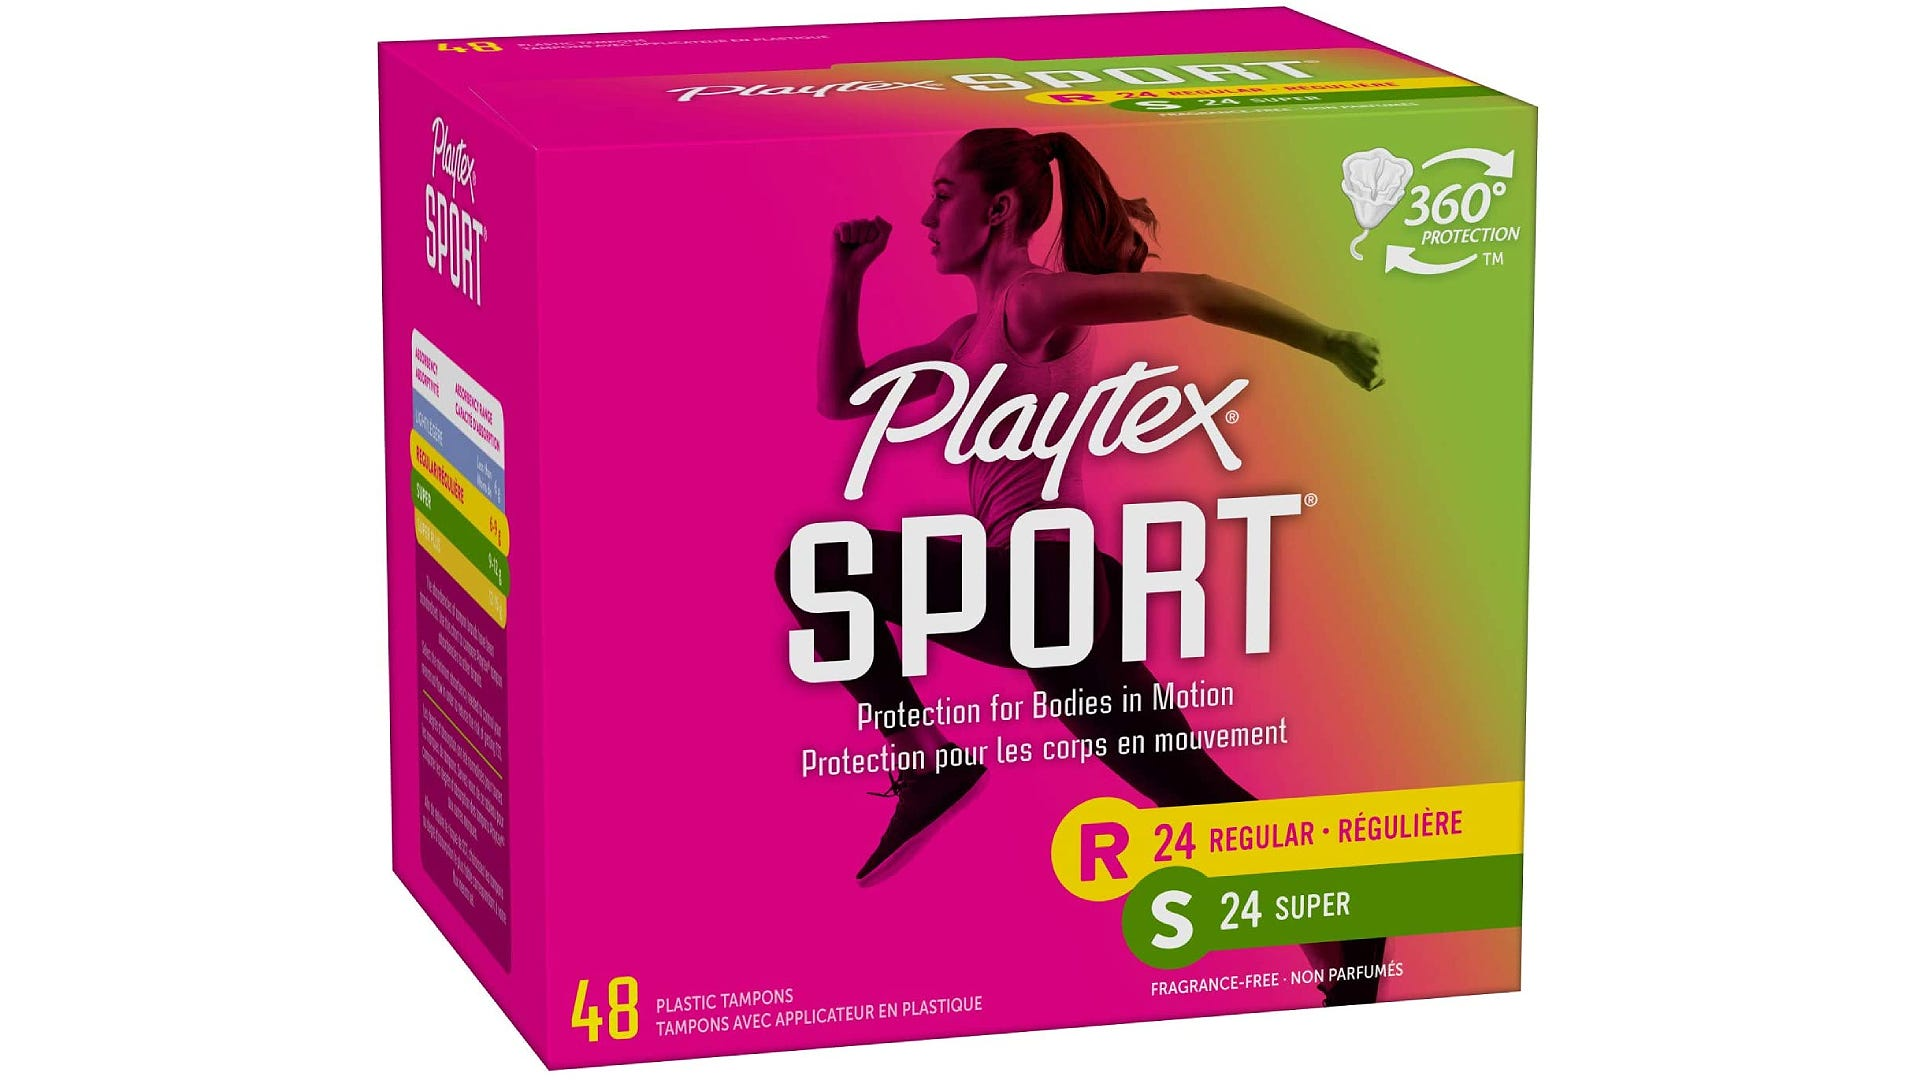 A pink and green box of Playtex Sport Tampons with a woman running on the front.